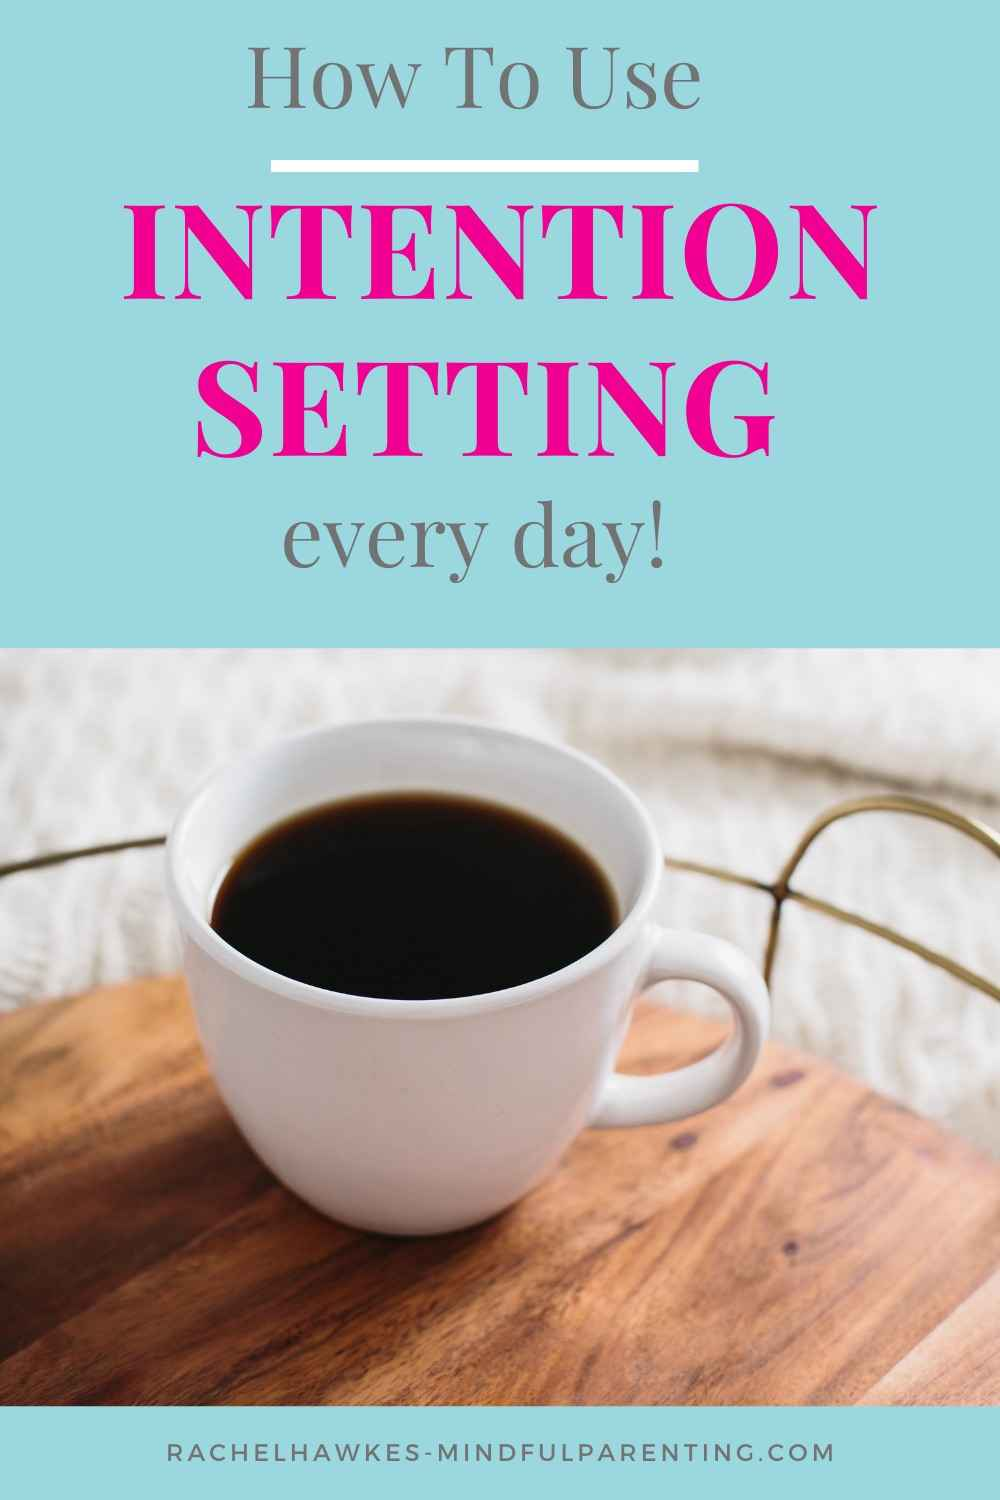 Intention setting for the family